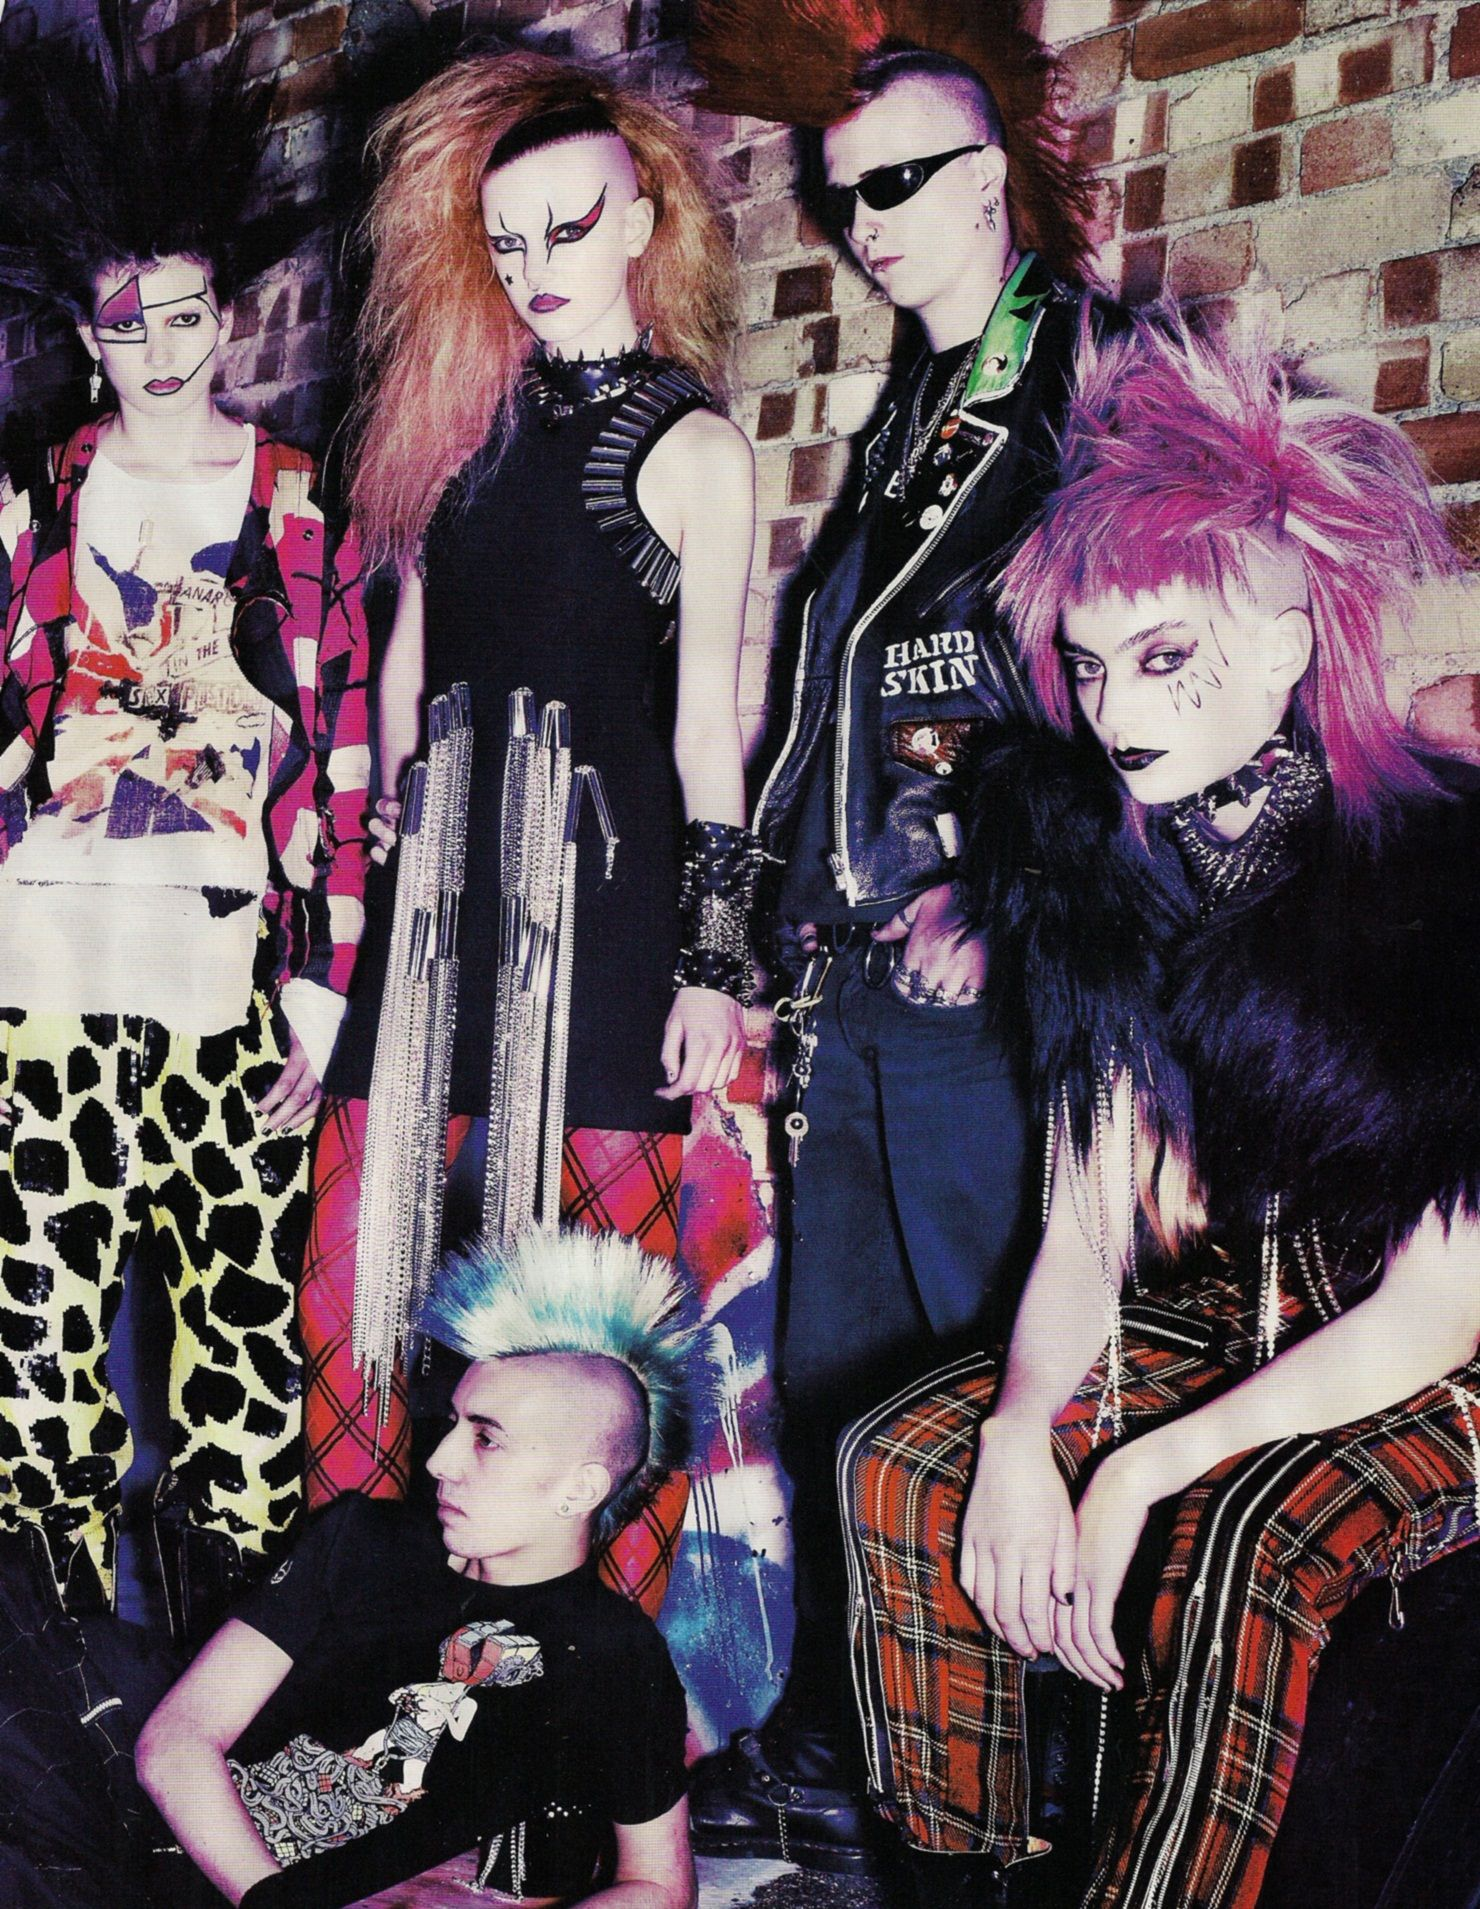 More Staples Of Punk Fashion Bright Garish Coloured Hair Spikes